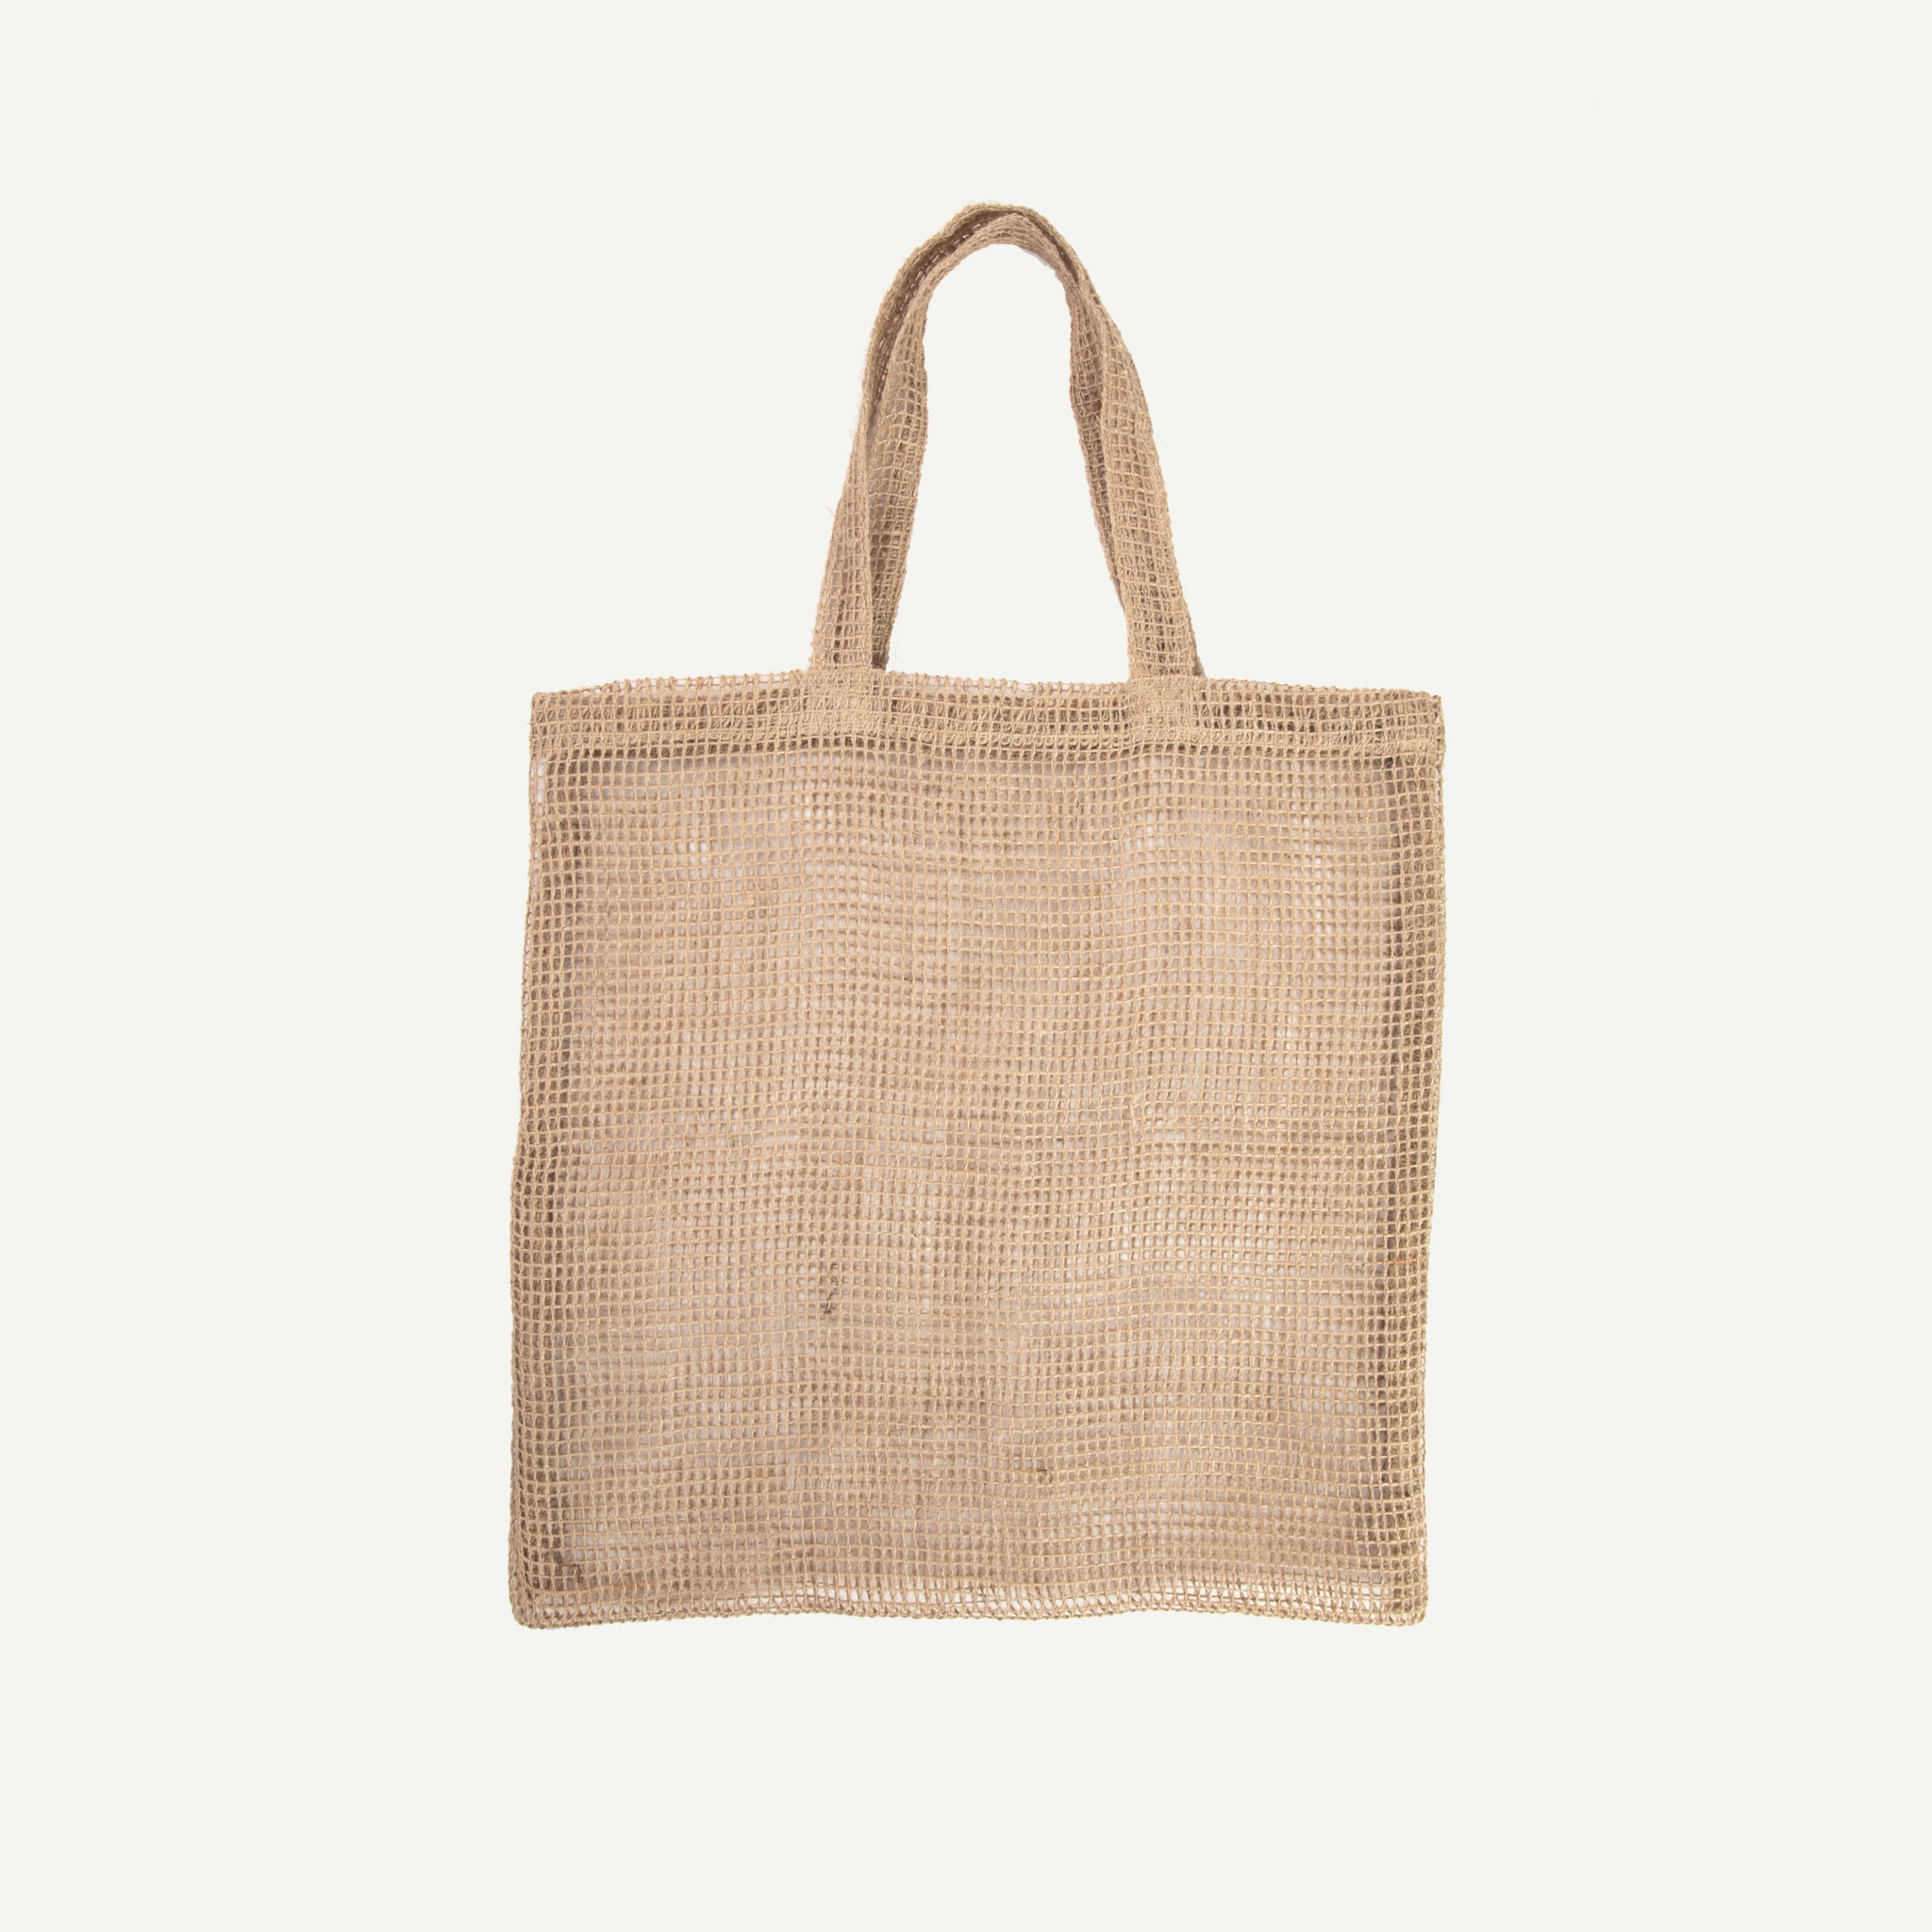 FAIR TRADE JUTE SHOPPING BAG